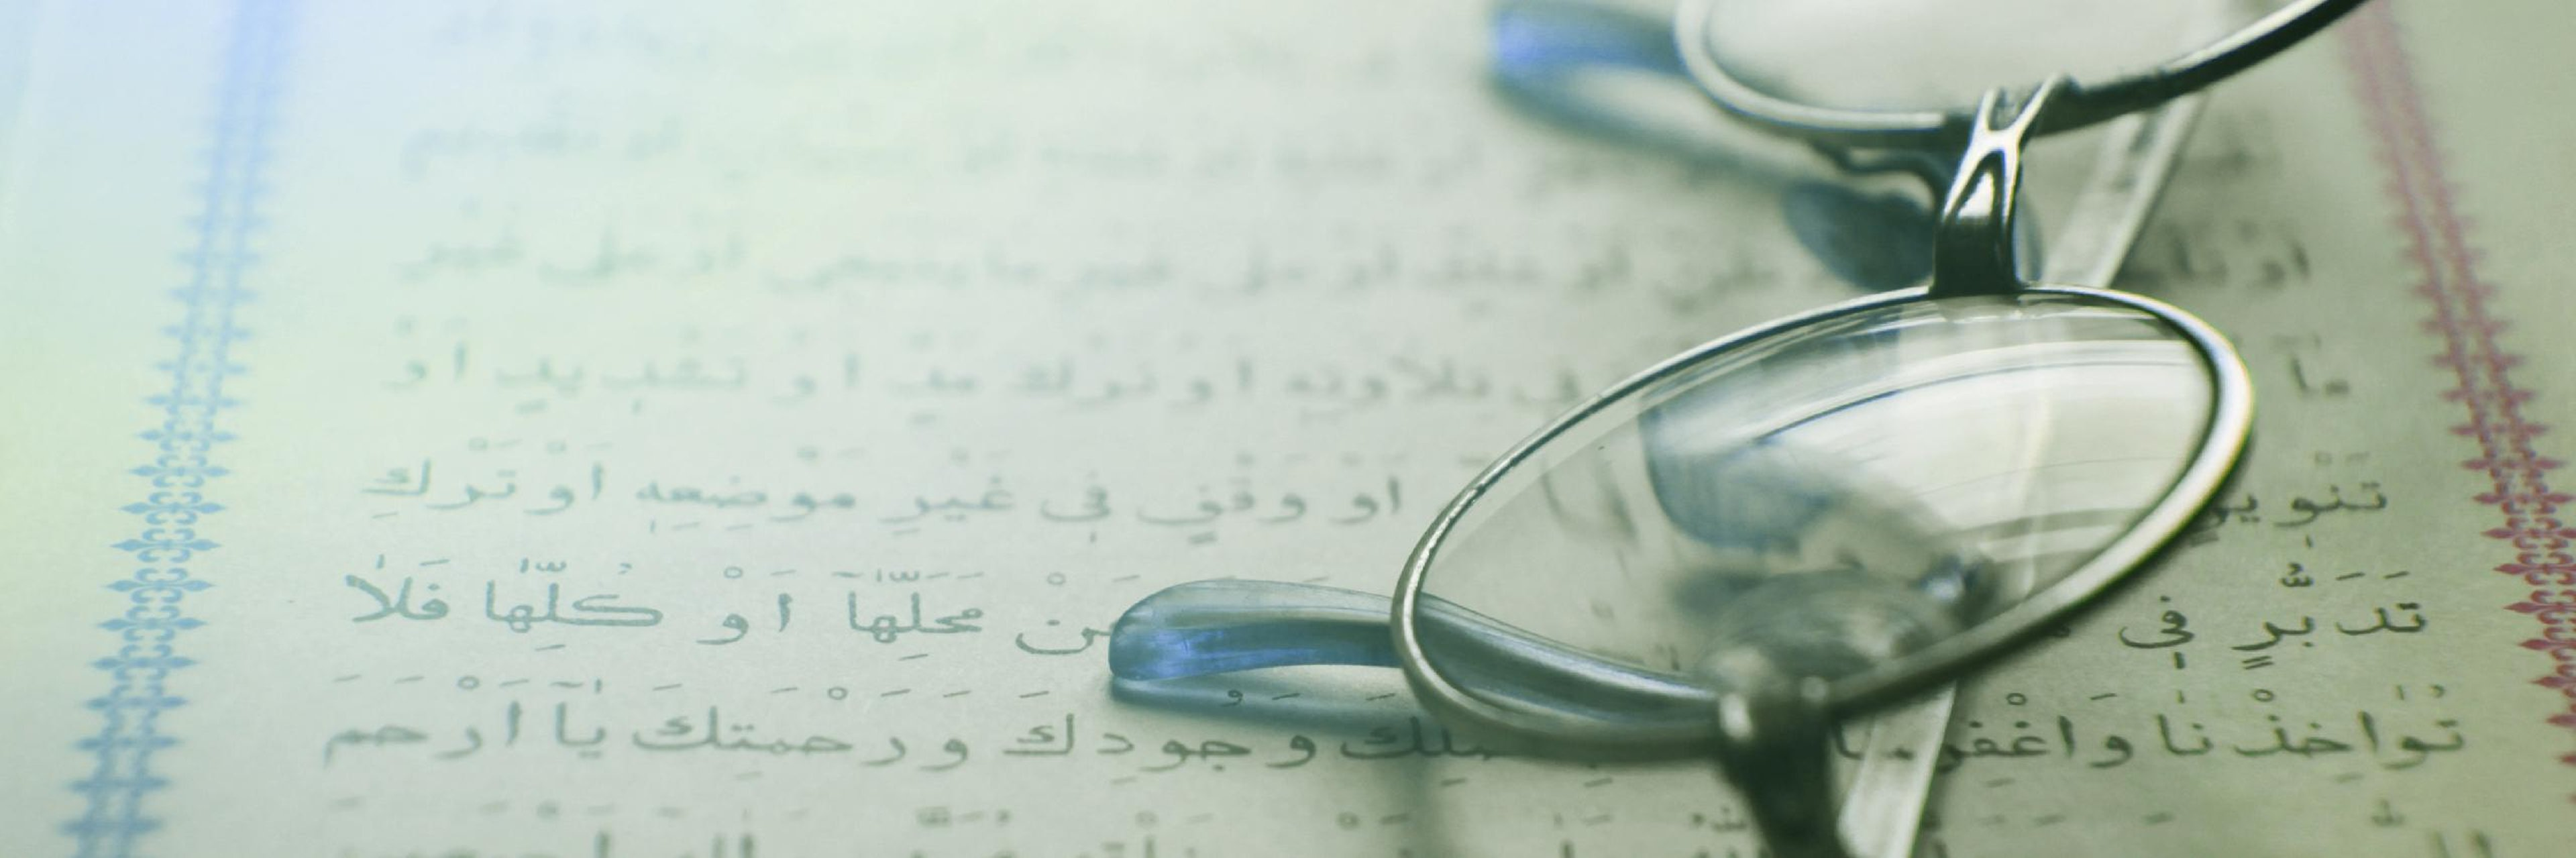 Abrogated Rulings in the Qur'an: Discerning their Divine Wisdom